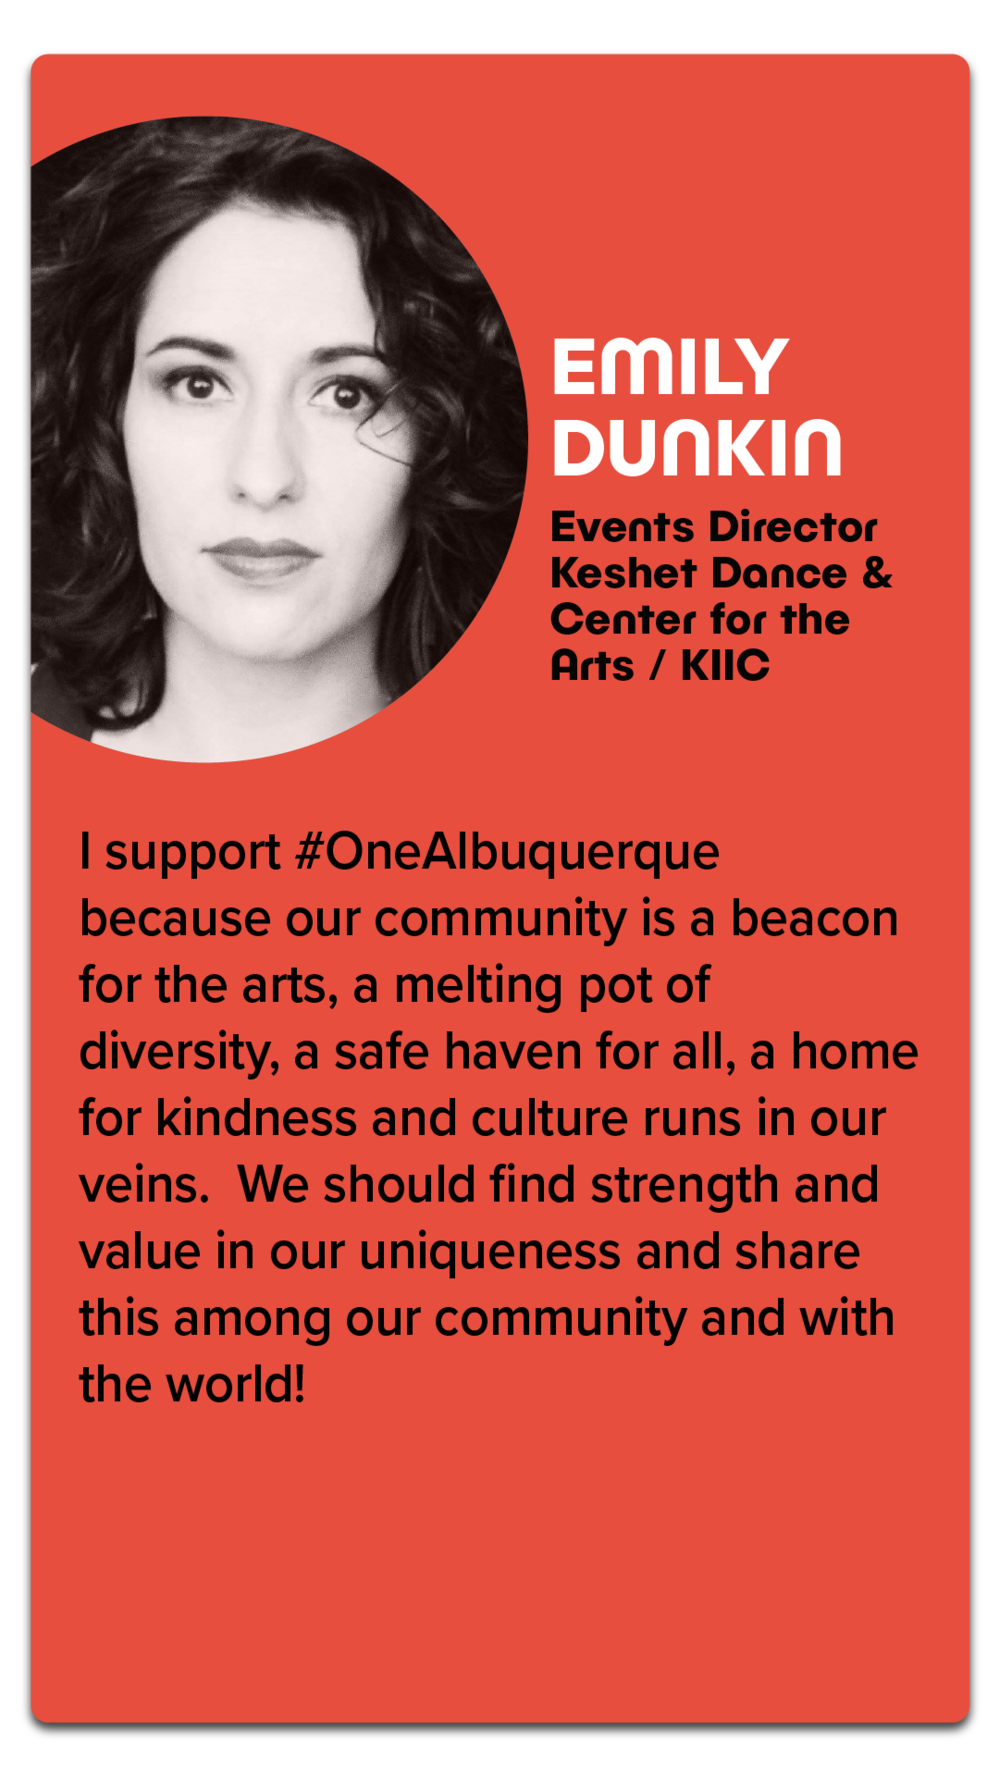 """Emily Dunkin, Events Director, Keshet Dance & Center for the Arts / KIIC  """"I support #OneAlbuquerque because our community is a beacon for the arts, a melting pot of diversity, a safe haven for all, a home for kindness and culture runs in our veins. We should find strength and value in our uniqueness and share this amount our community and with the world!"""""""